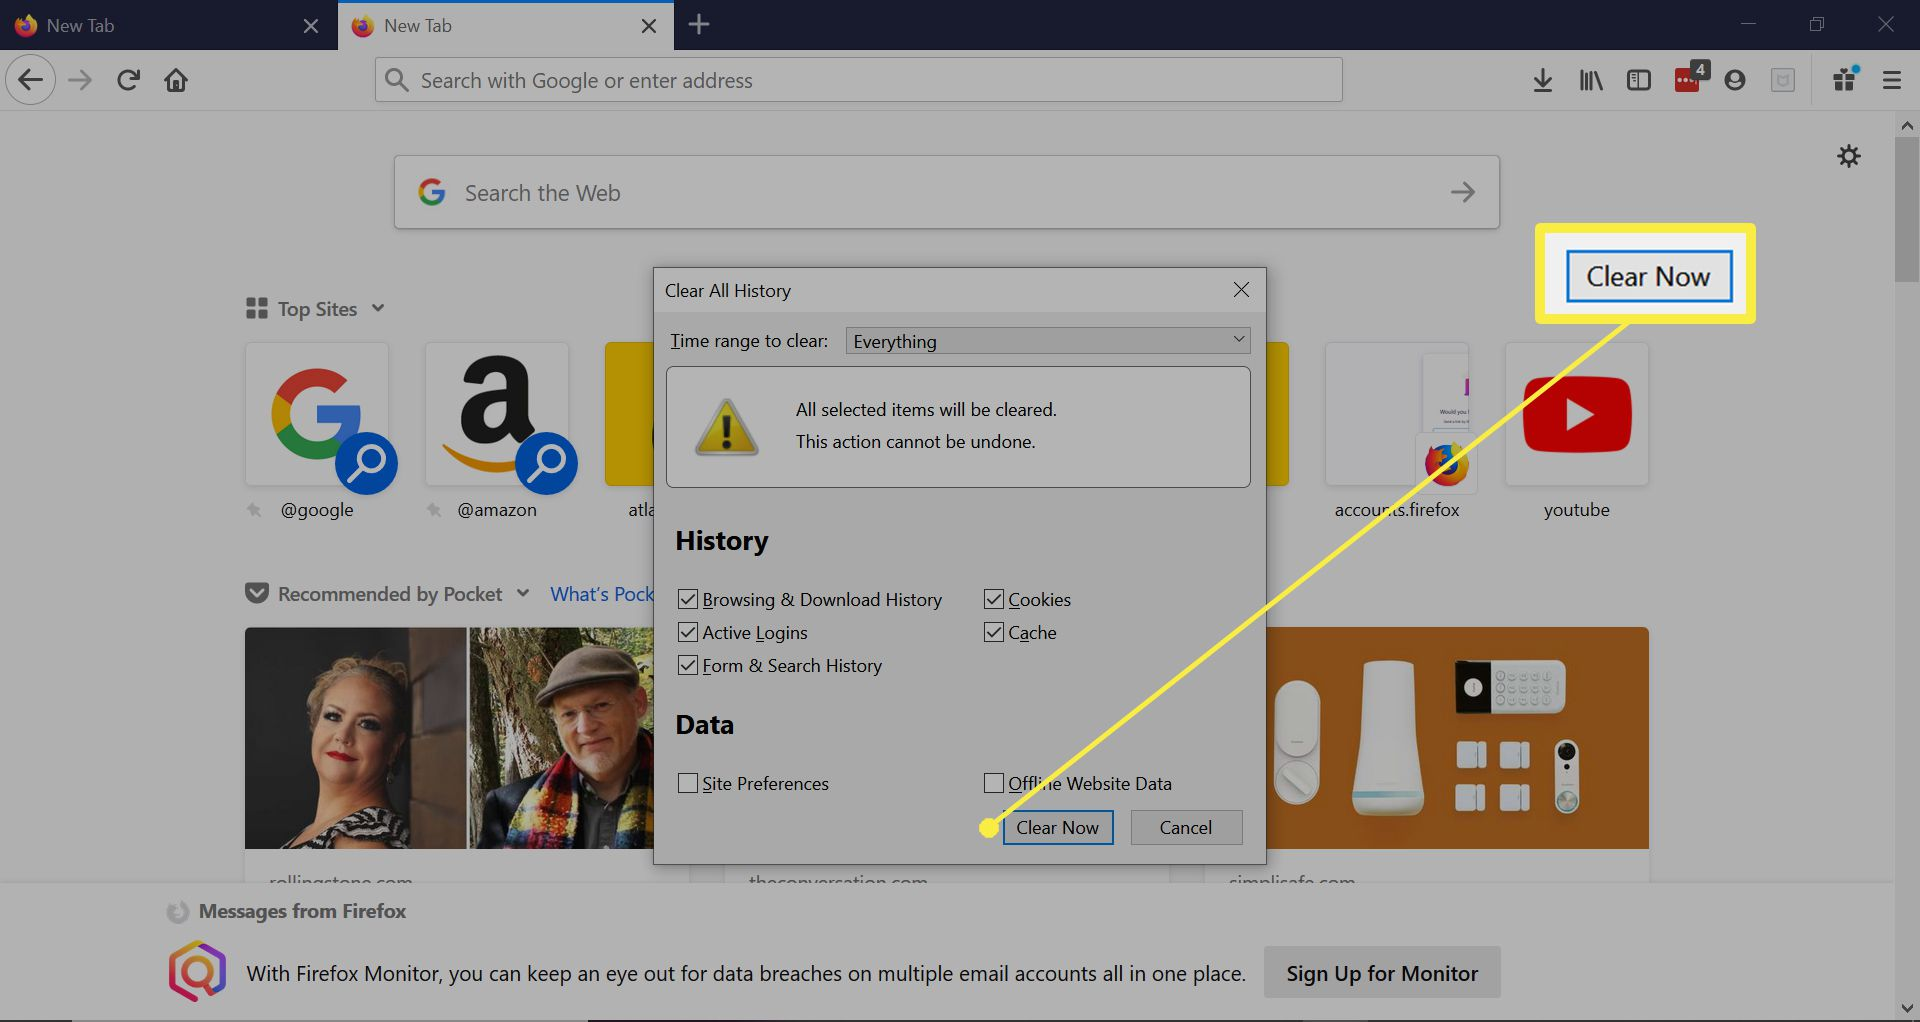 Clearing form and search history in Firefox.